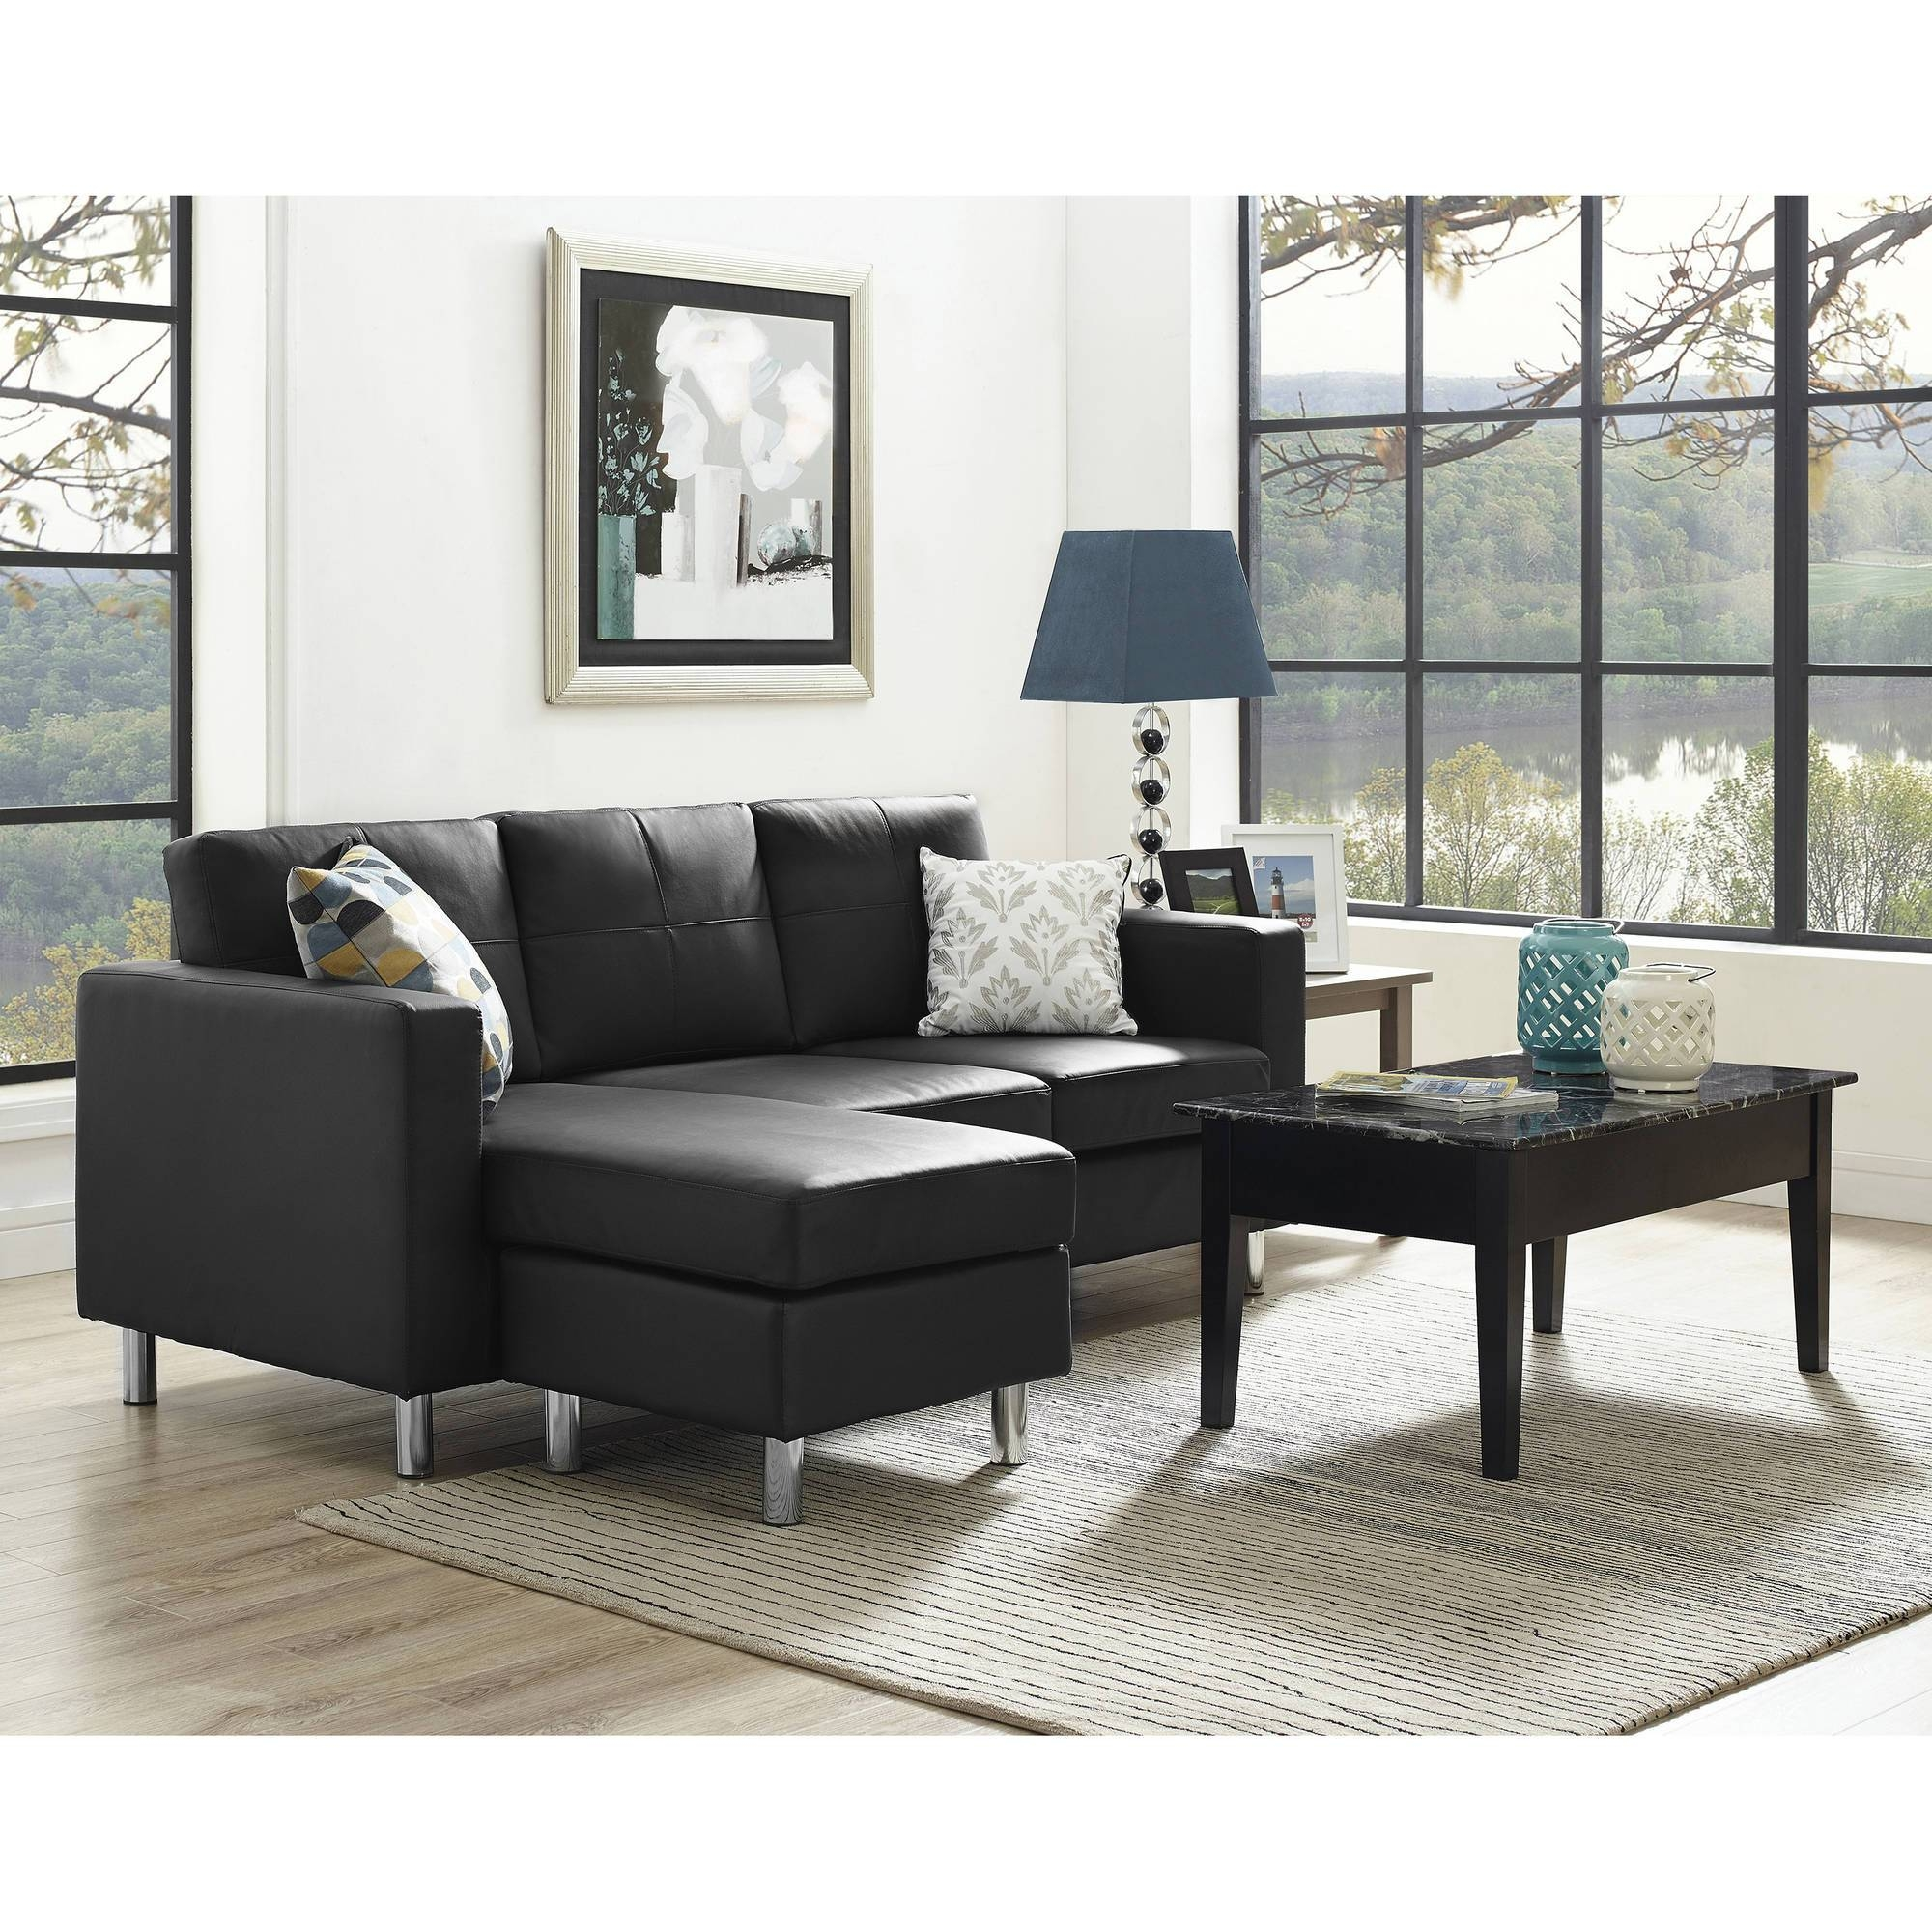 Dorel Living Small Spaces Configurable Sectional Sofa, Multiple regarding Inexpensive Sectional Sofas For Small Spaces (Image 6 of 30)